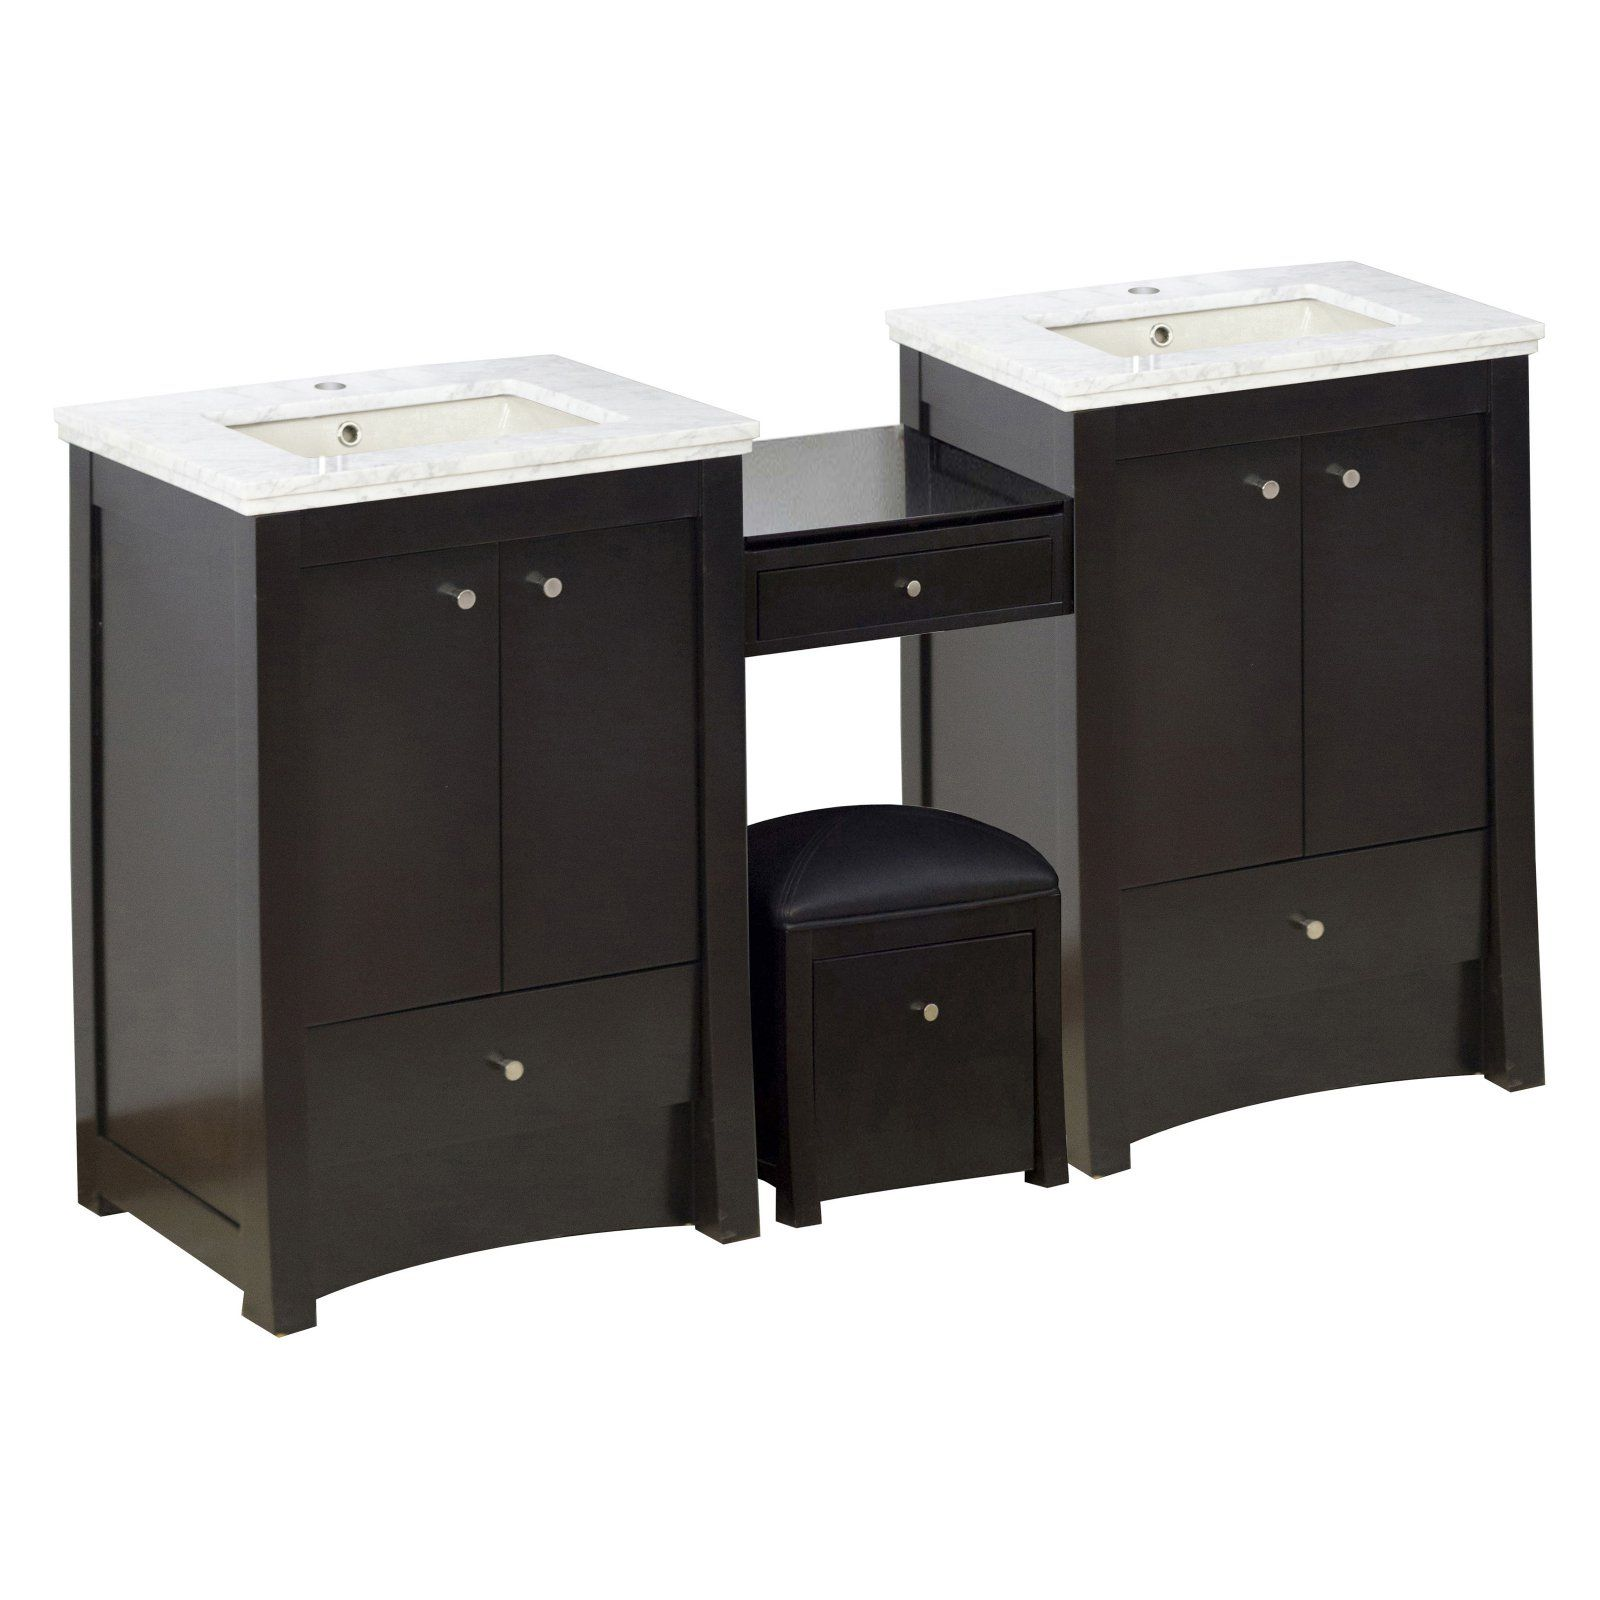 American Imaginations Elite Double Undermount Sink Bathroom Vanity